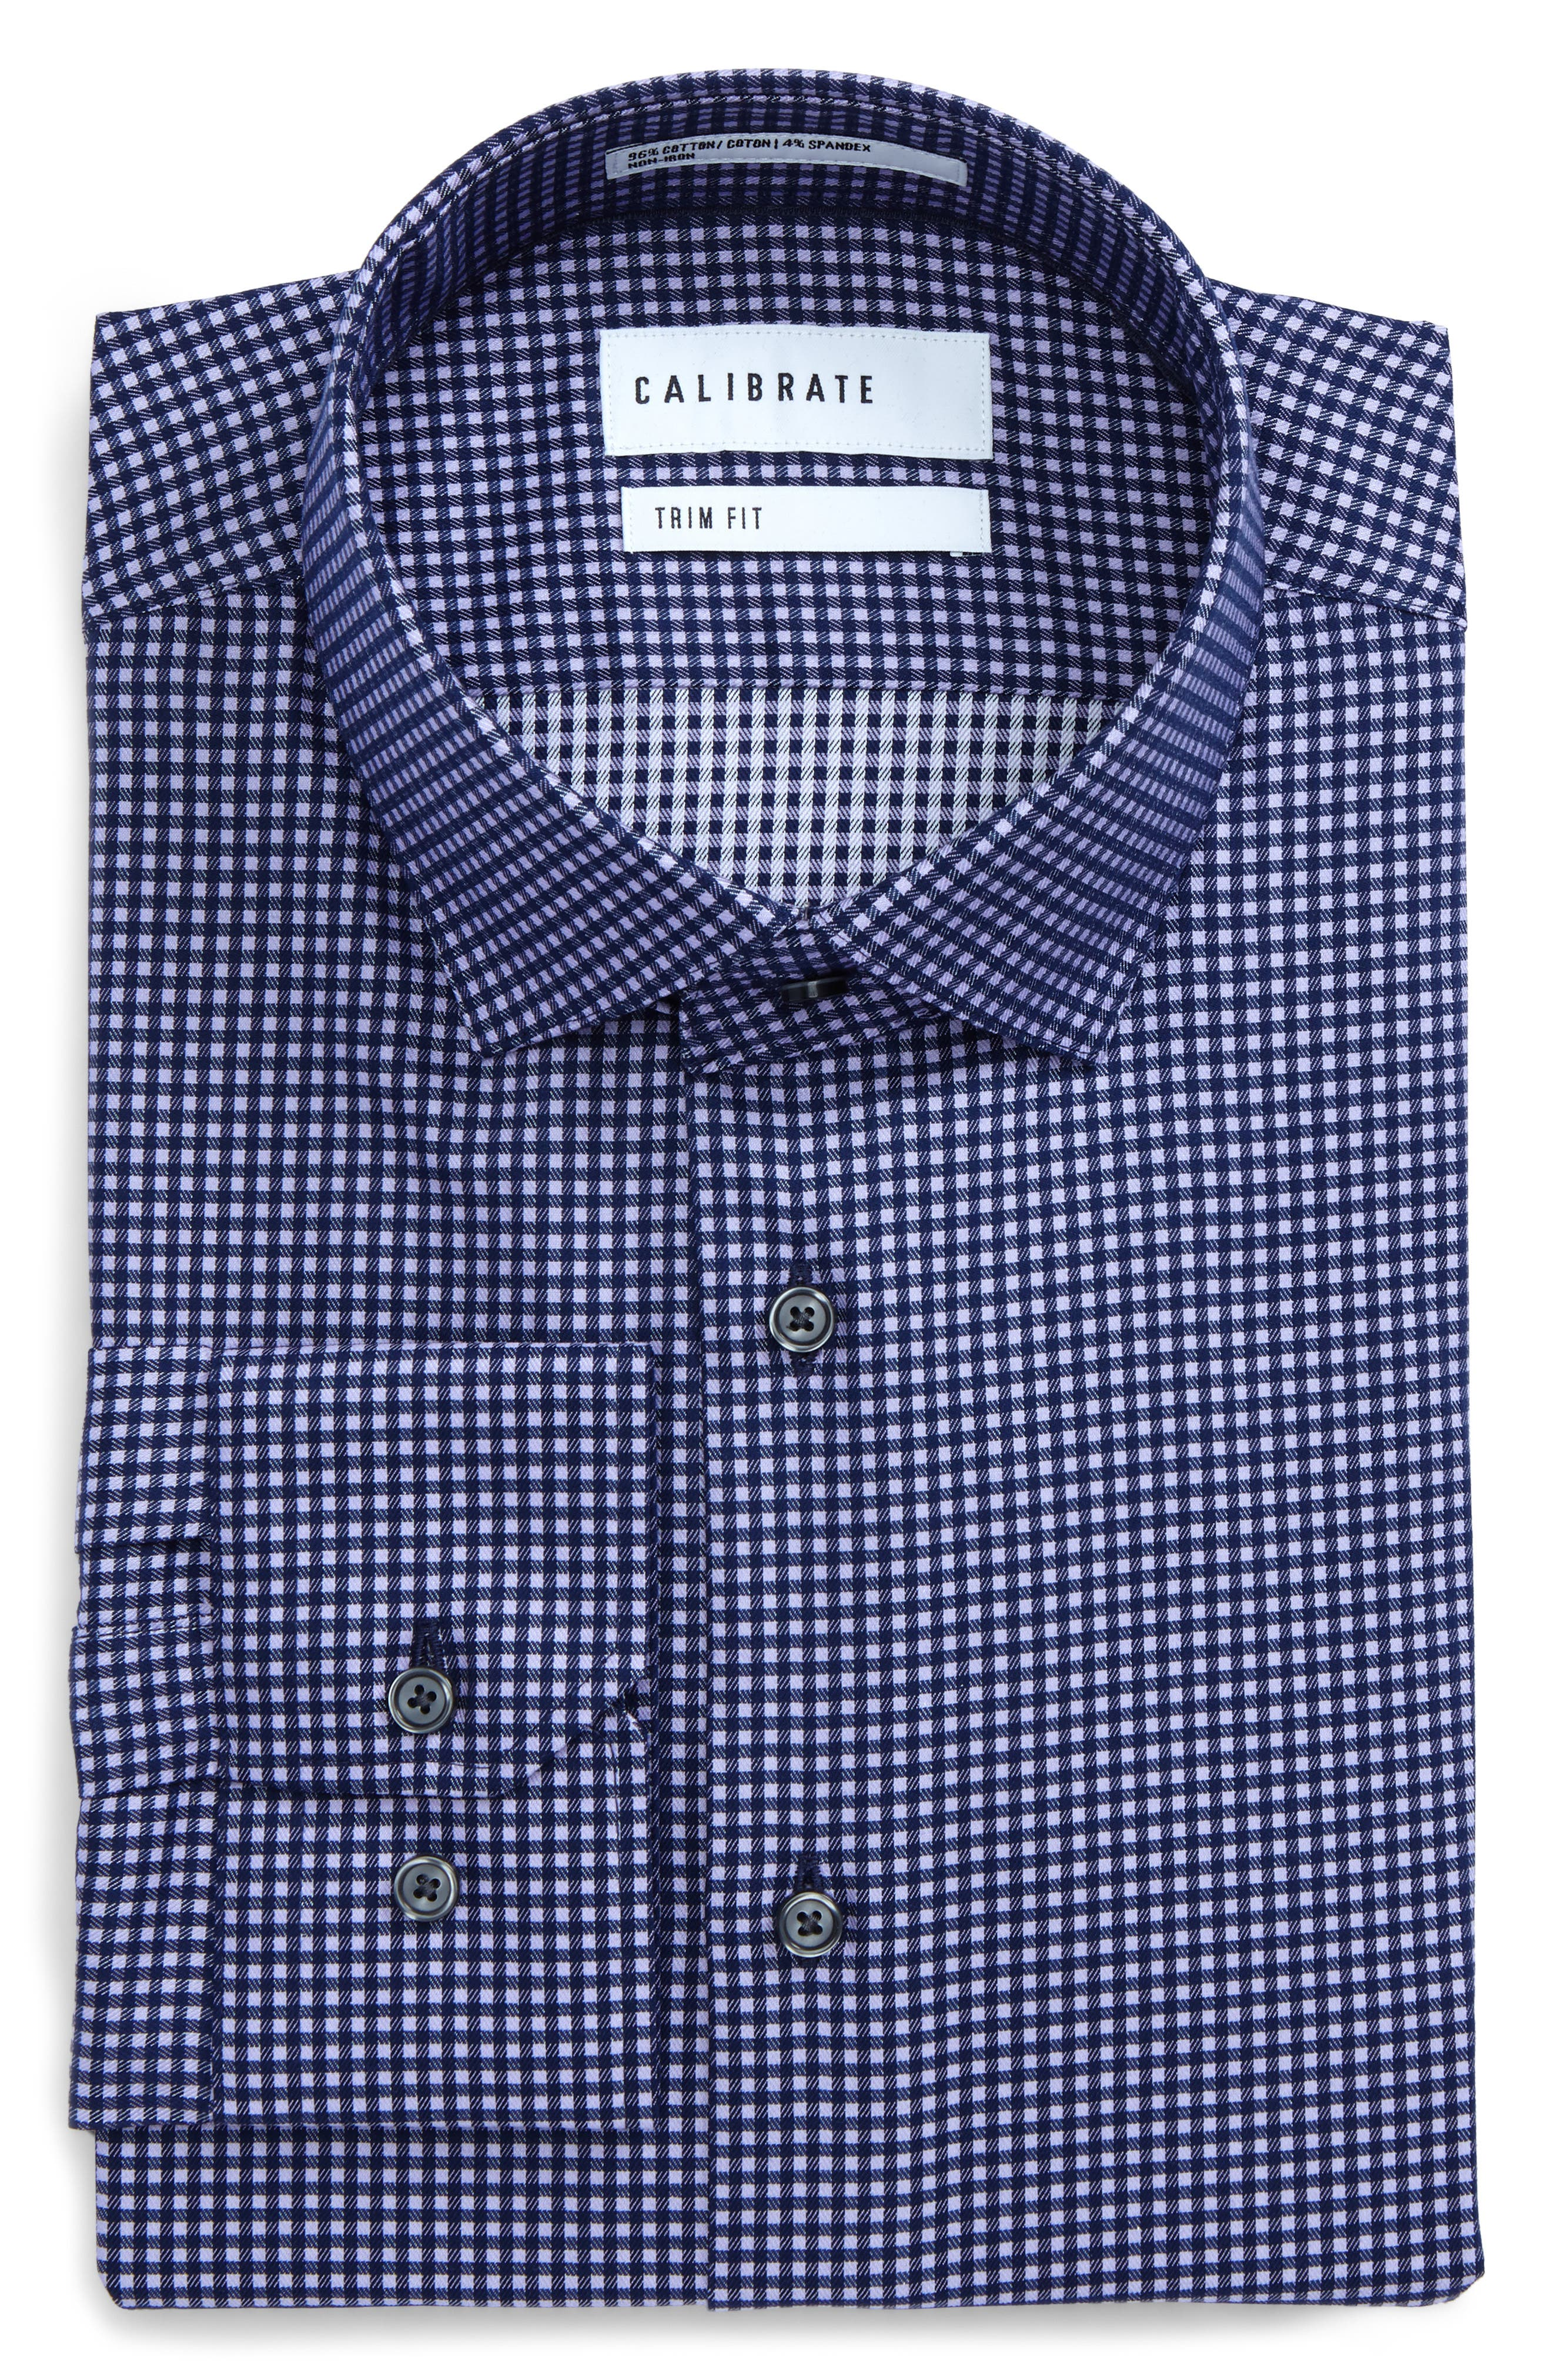 Alternate Image 1 Selected - Calibrate Trim Fit Stretch Check Dress Shirt